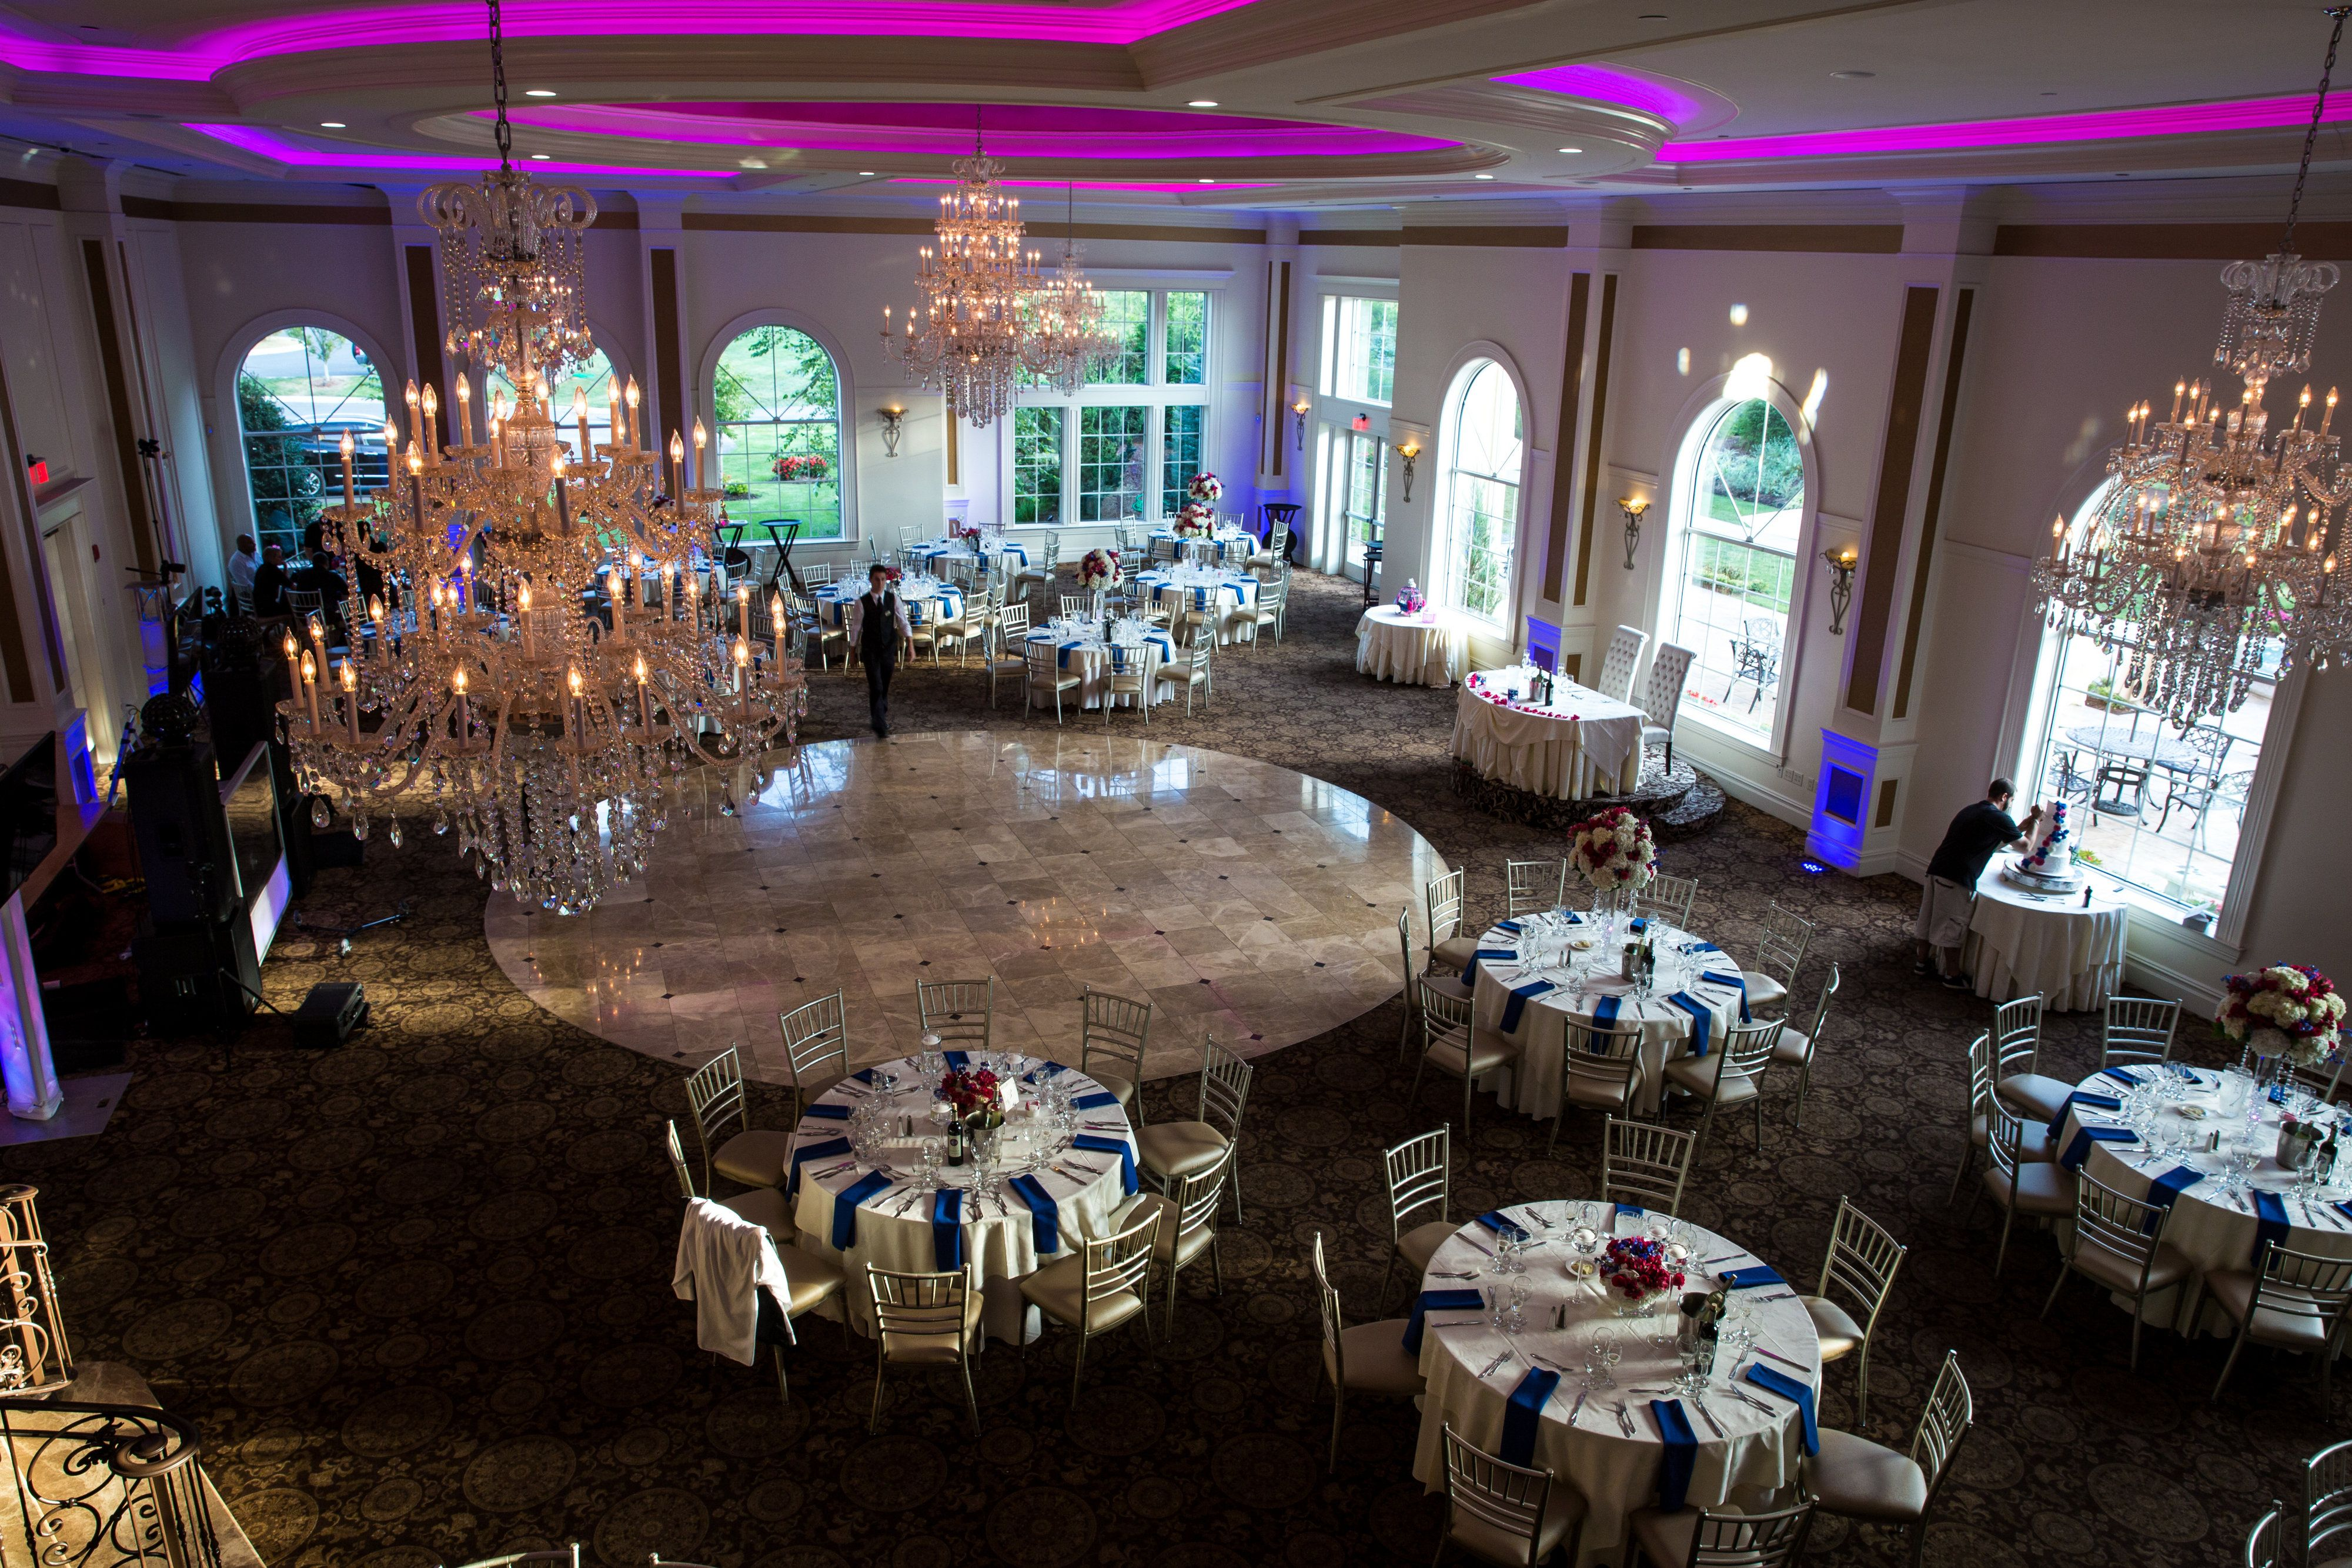 Celebrations By Christina Danny Kash Photography Flowers By Danielle Llc Aria Wedding Banquet Facility By Vil Wedding Venues Banquet Facilities My Wedding